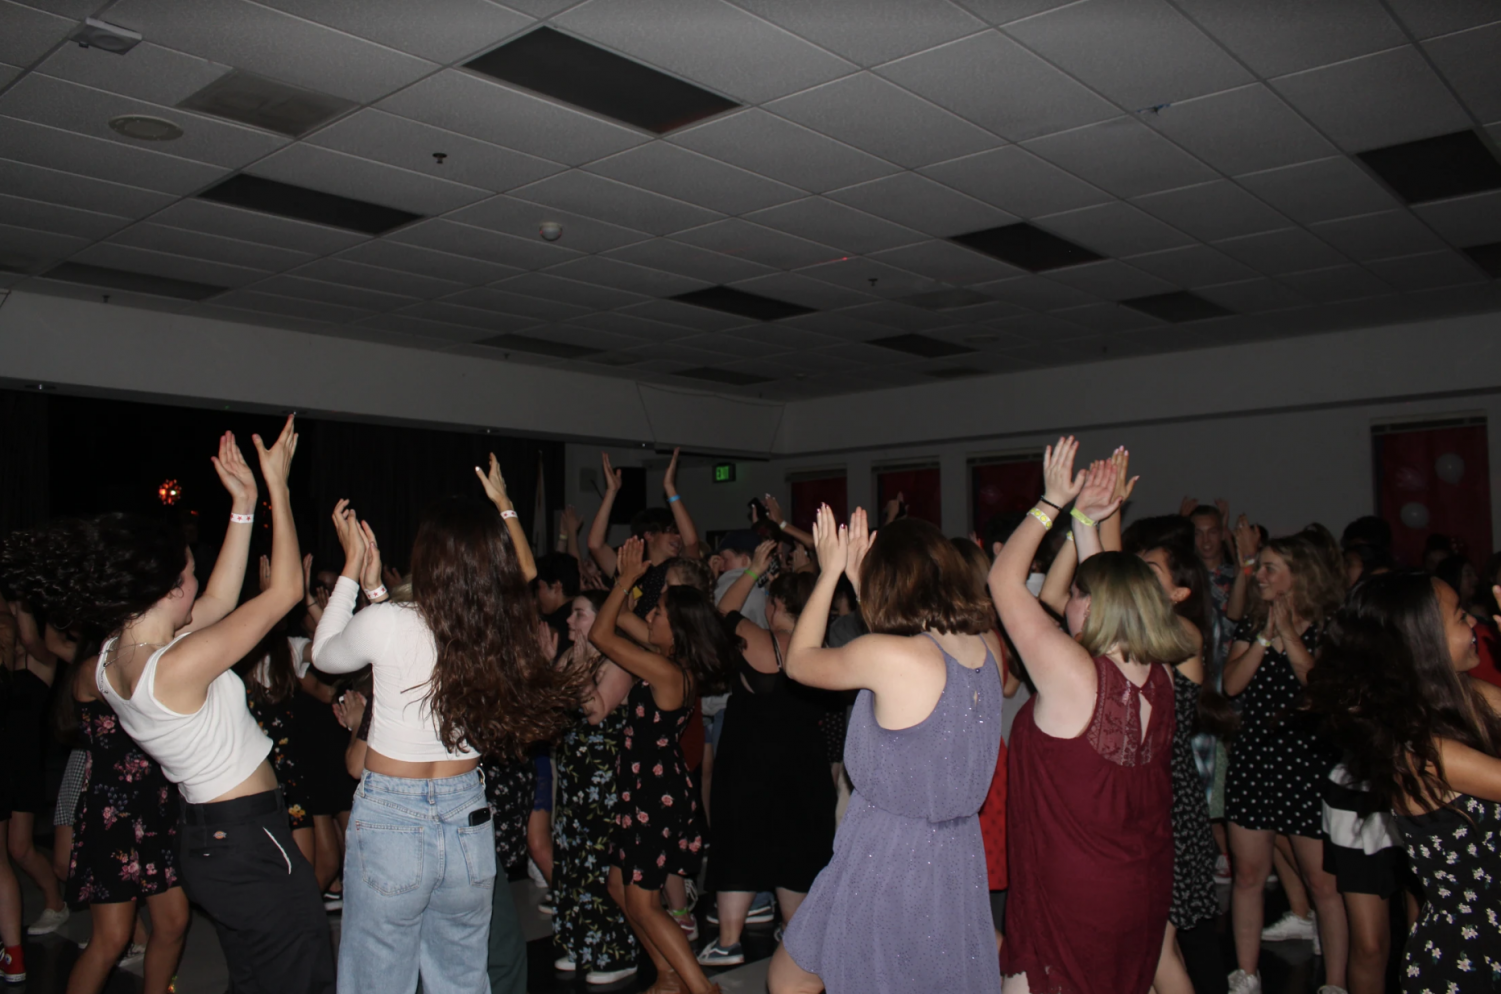 Students clap to the beat of the music at Foothill's Sadie Hawkins dance.